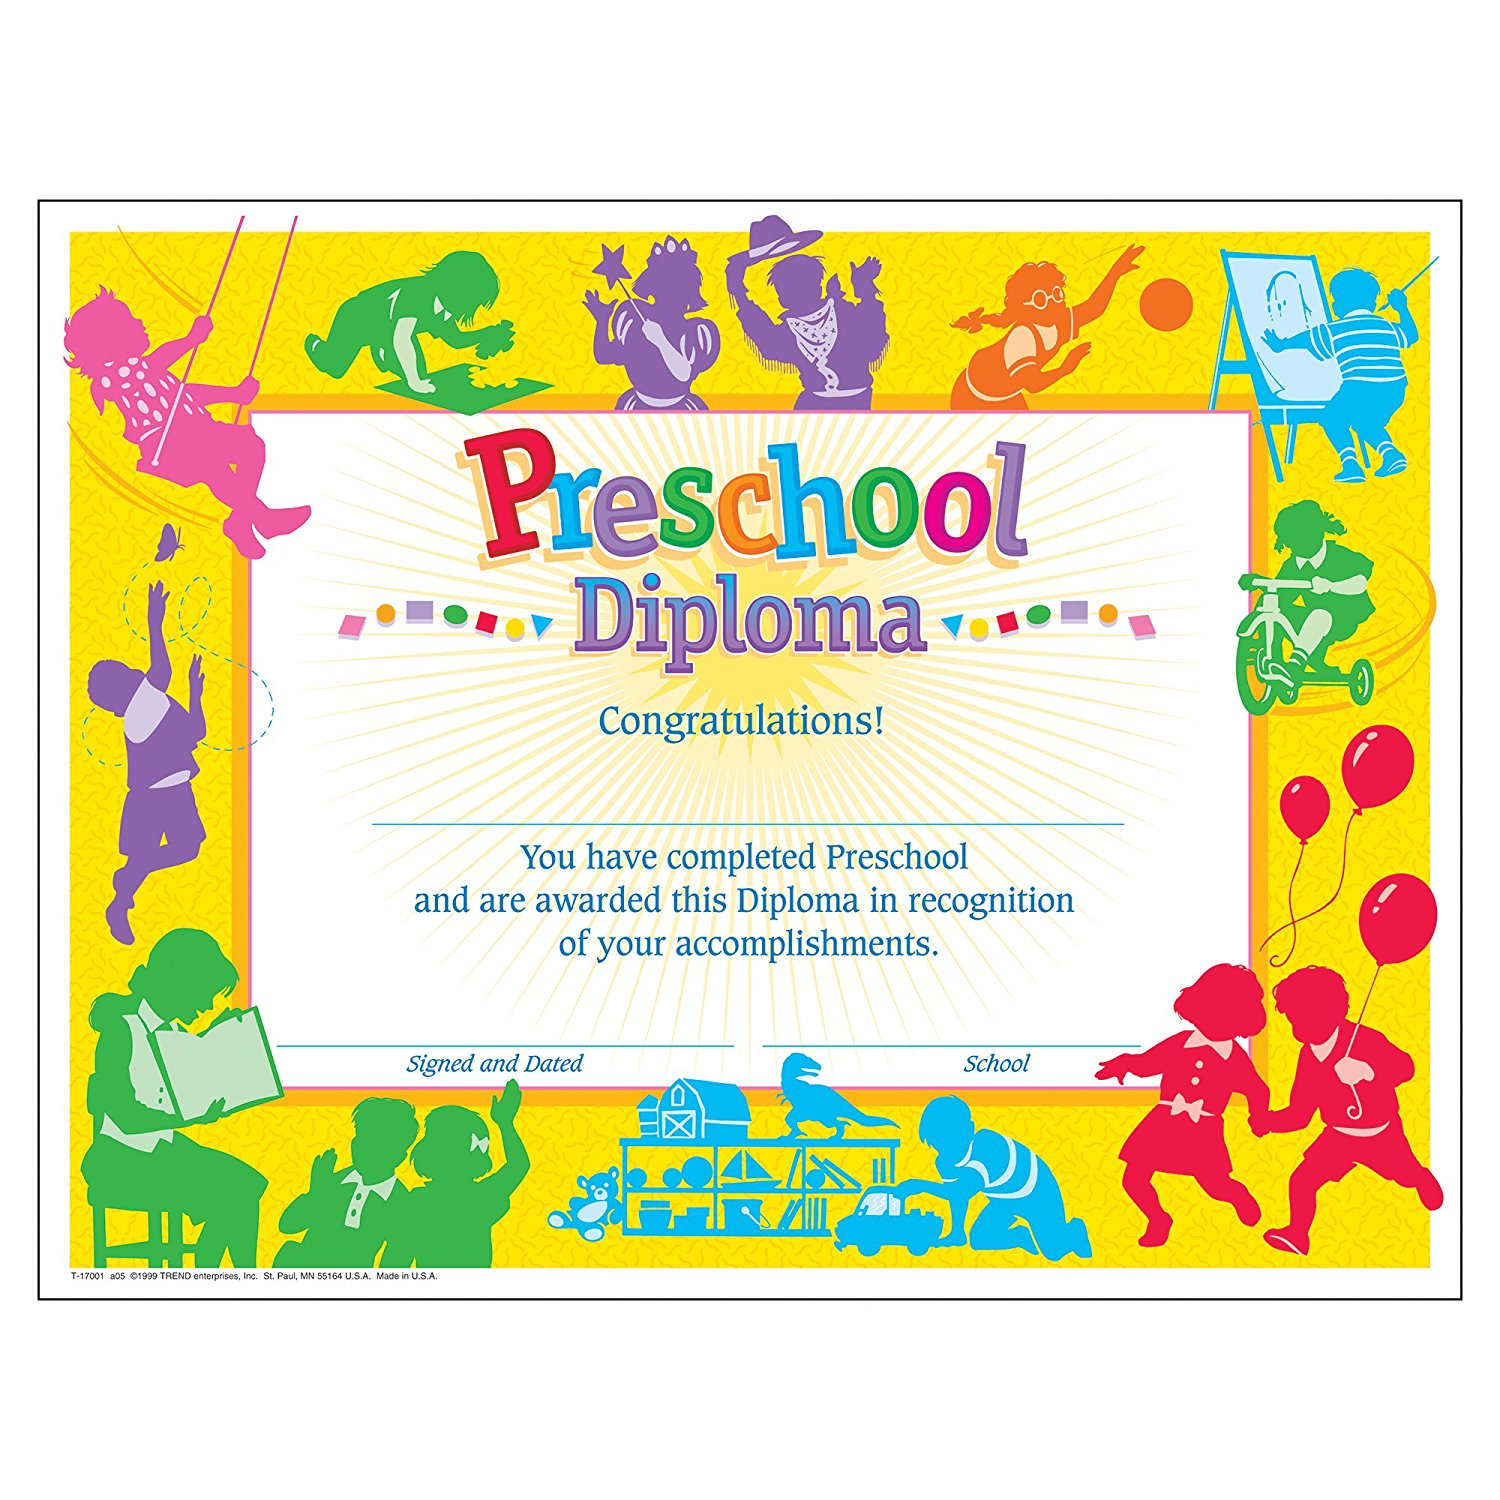 Kindergarten Awards Certificates: Preschool Graduation Diploma